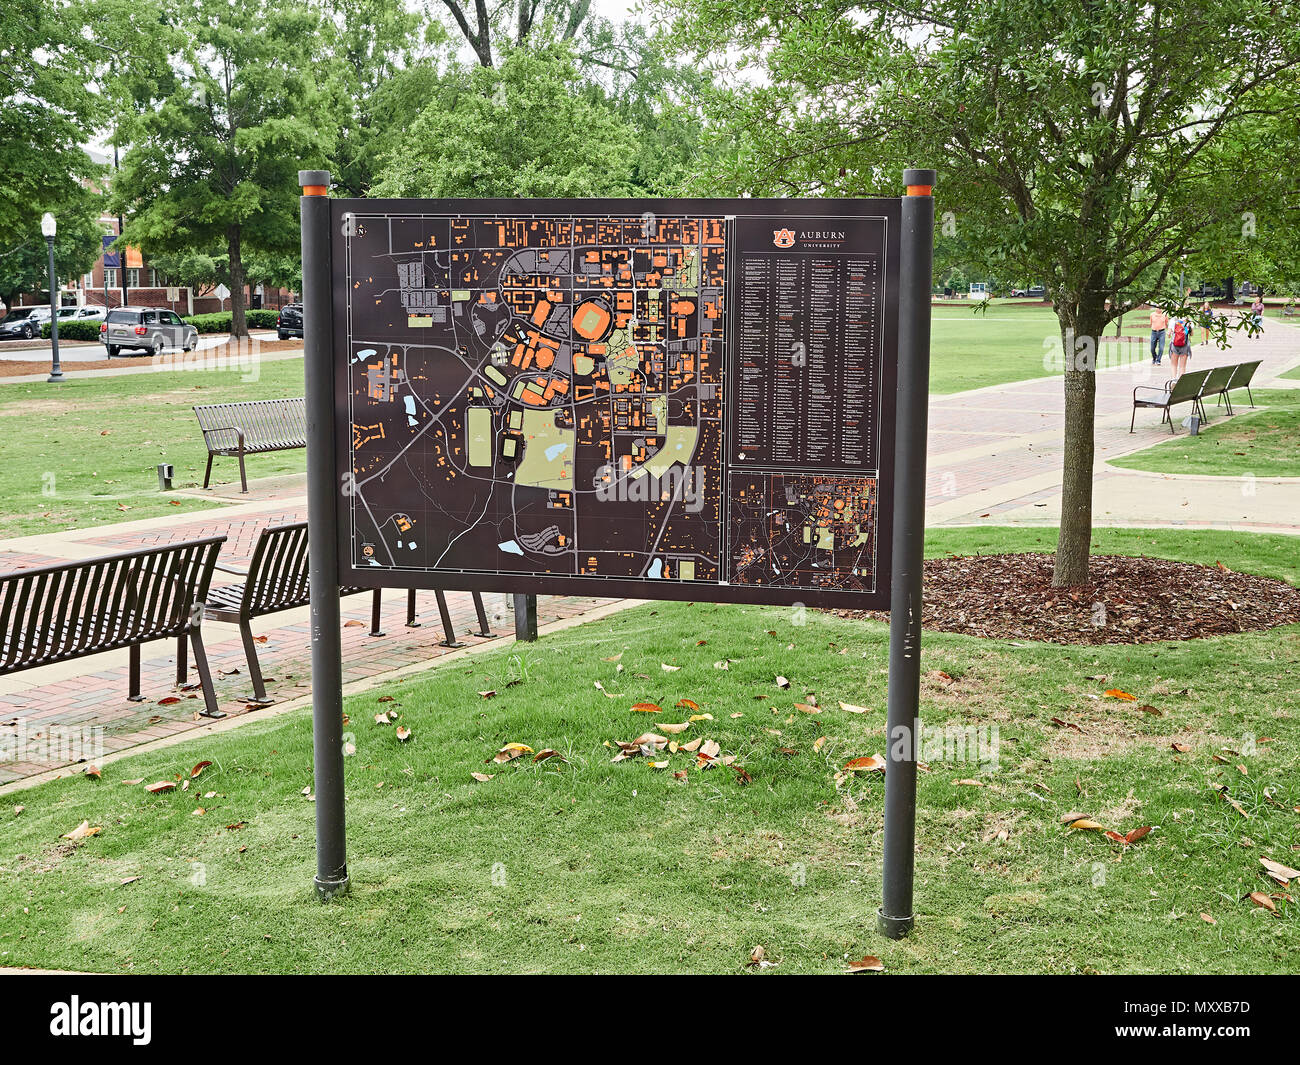 Auburn University campus directory sign posted giving directions to various college buildings in Auburn Alabama, USA. - Stock Image